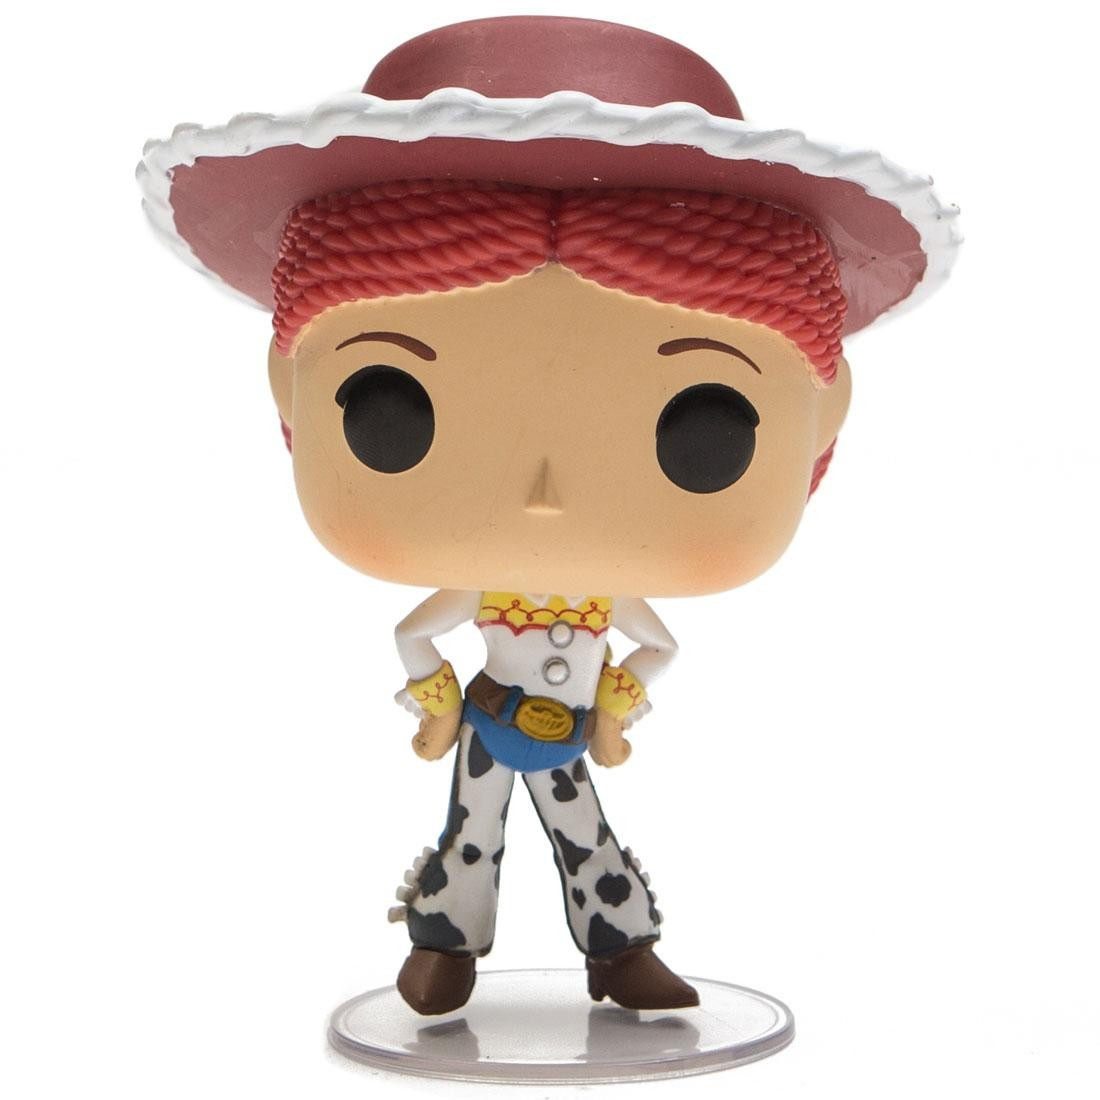 Funko POP Disney Pixar Toy Story 4 Jessie (red)